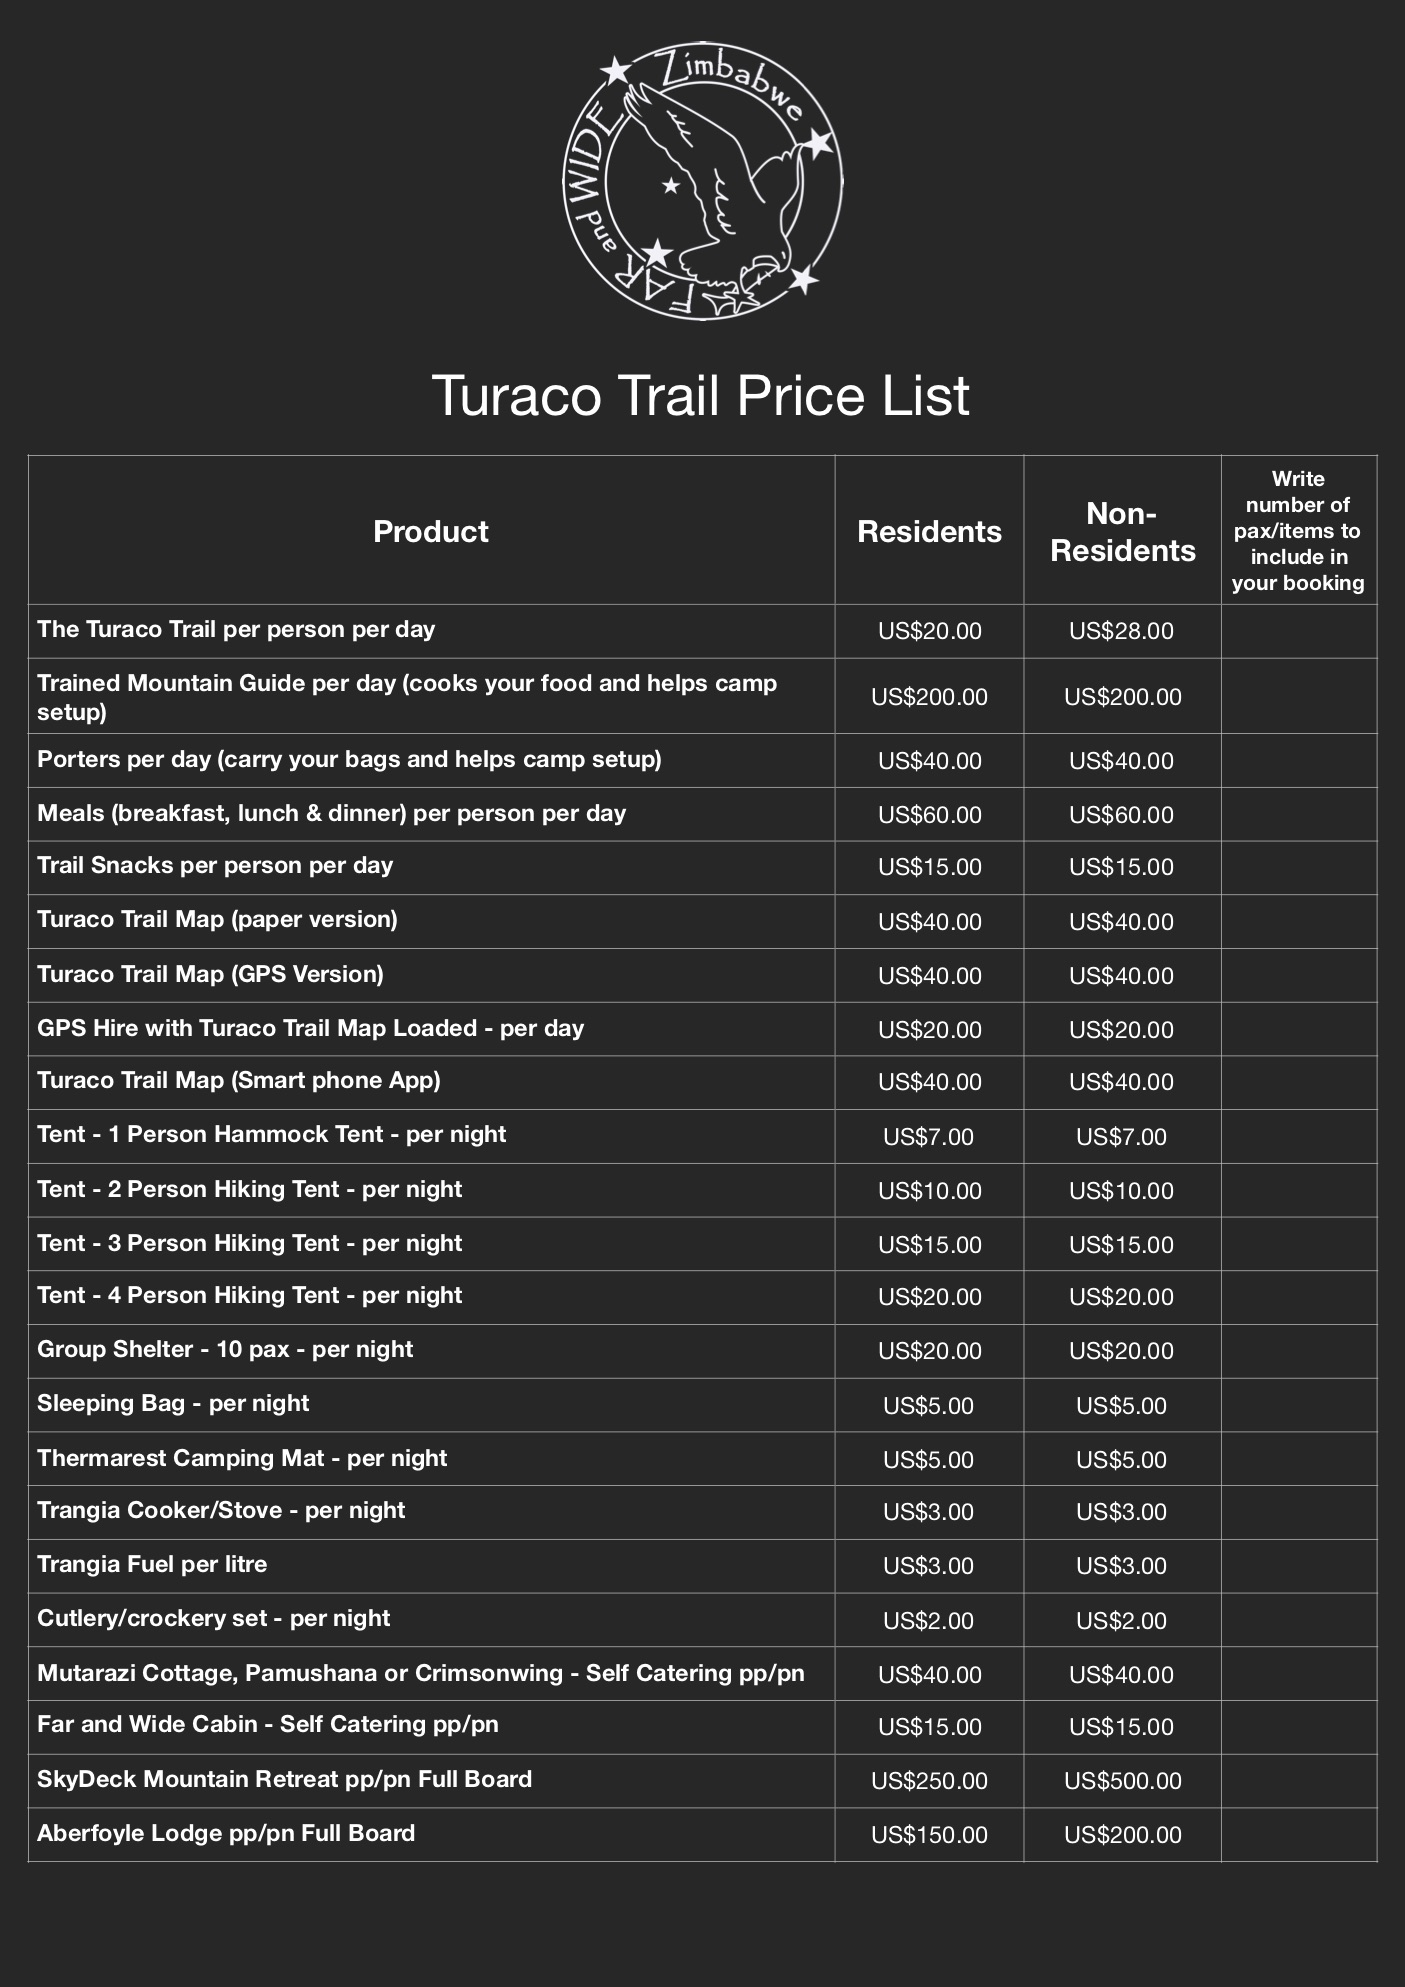 Turaco Trail 2020 fees